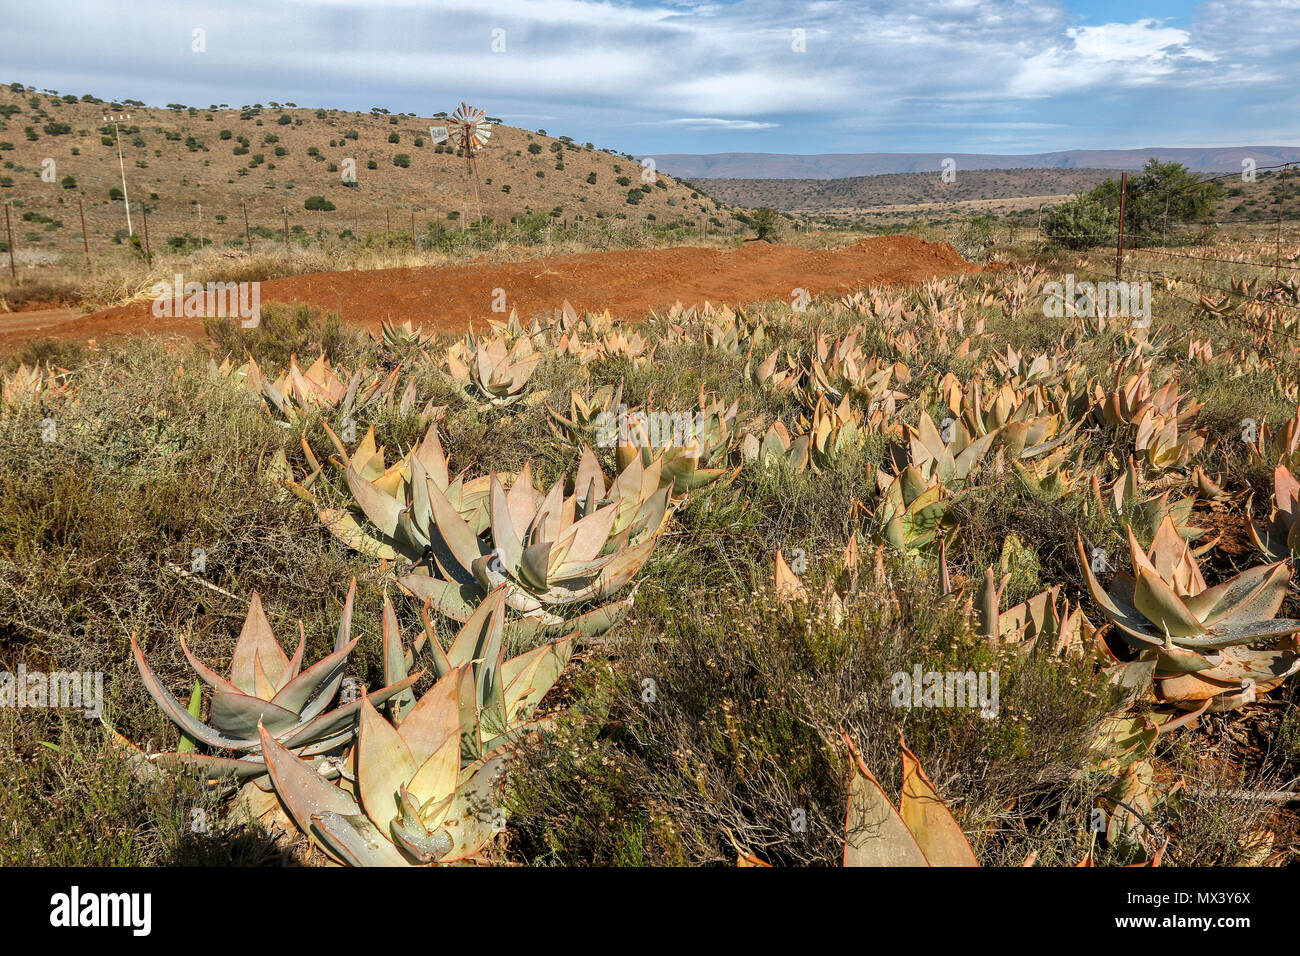 Succulents in the red semi-arid landscape of the  Addo Elephant National Park, eastern cape, south Africa - Stock Image